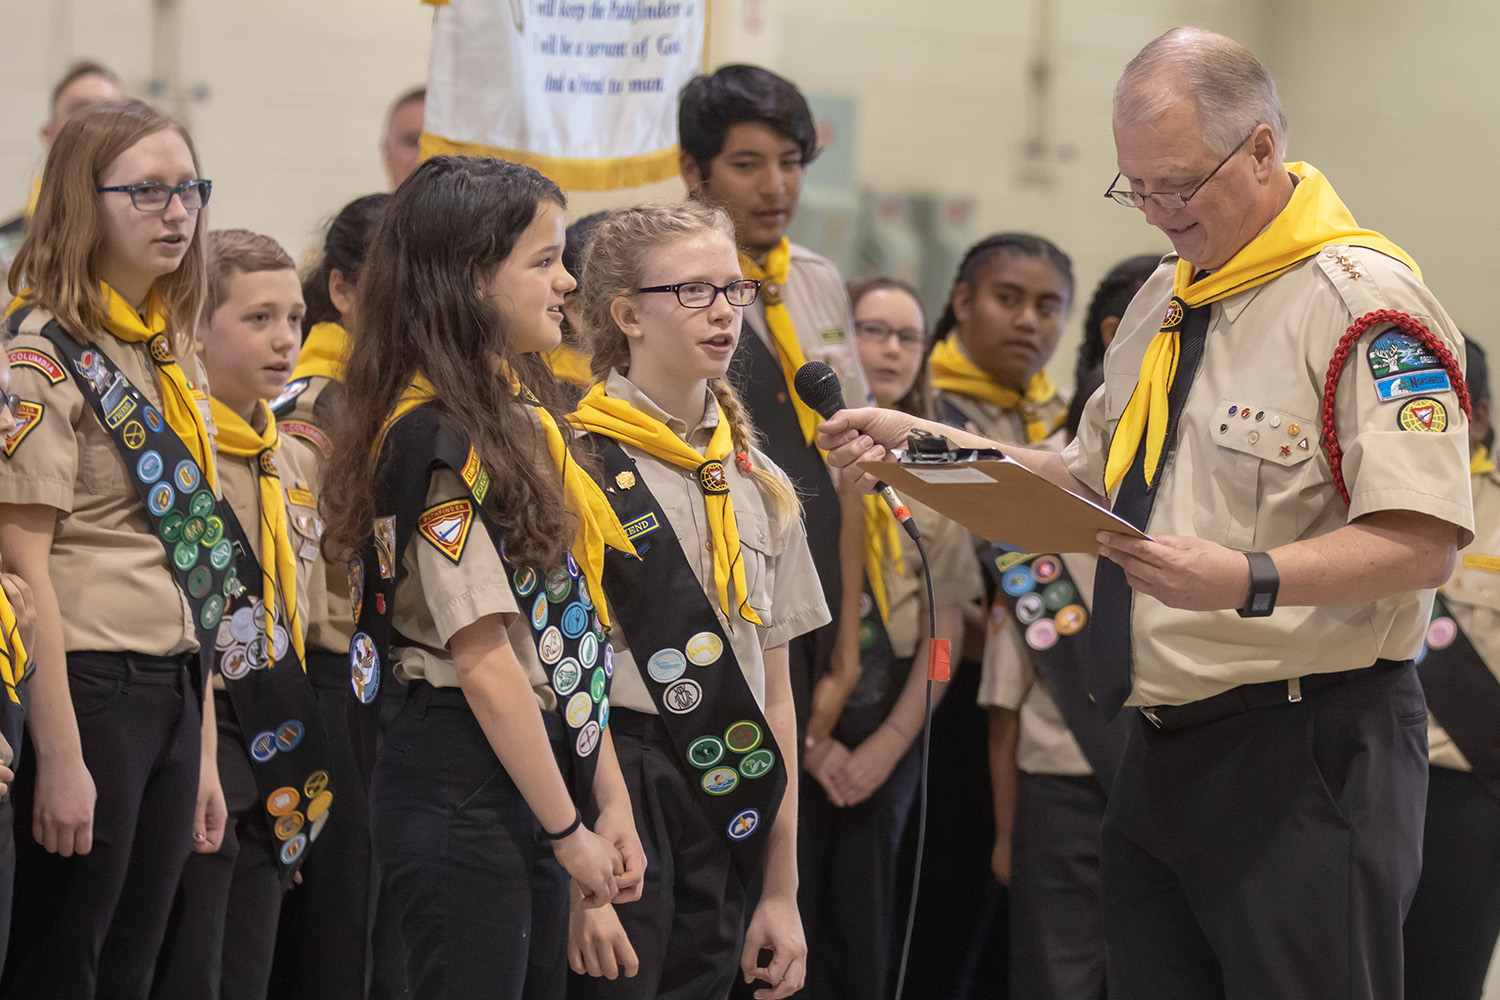 Pathfinders in uniform with leader